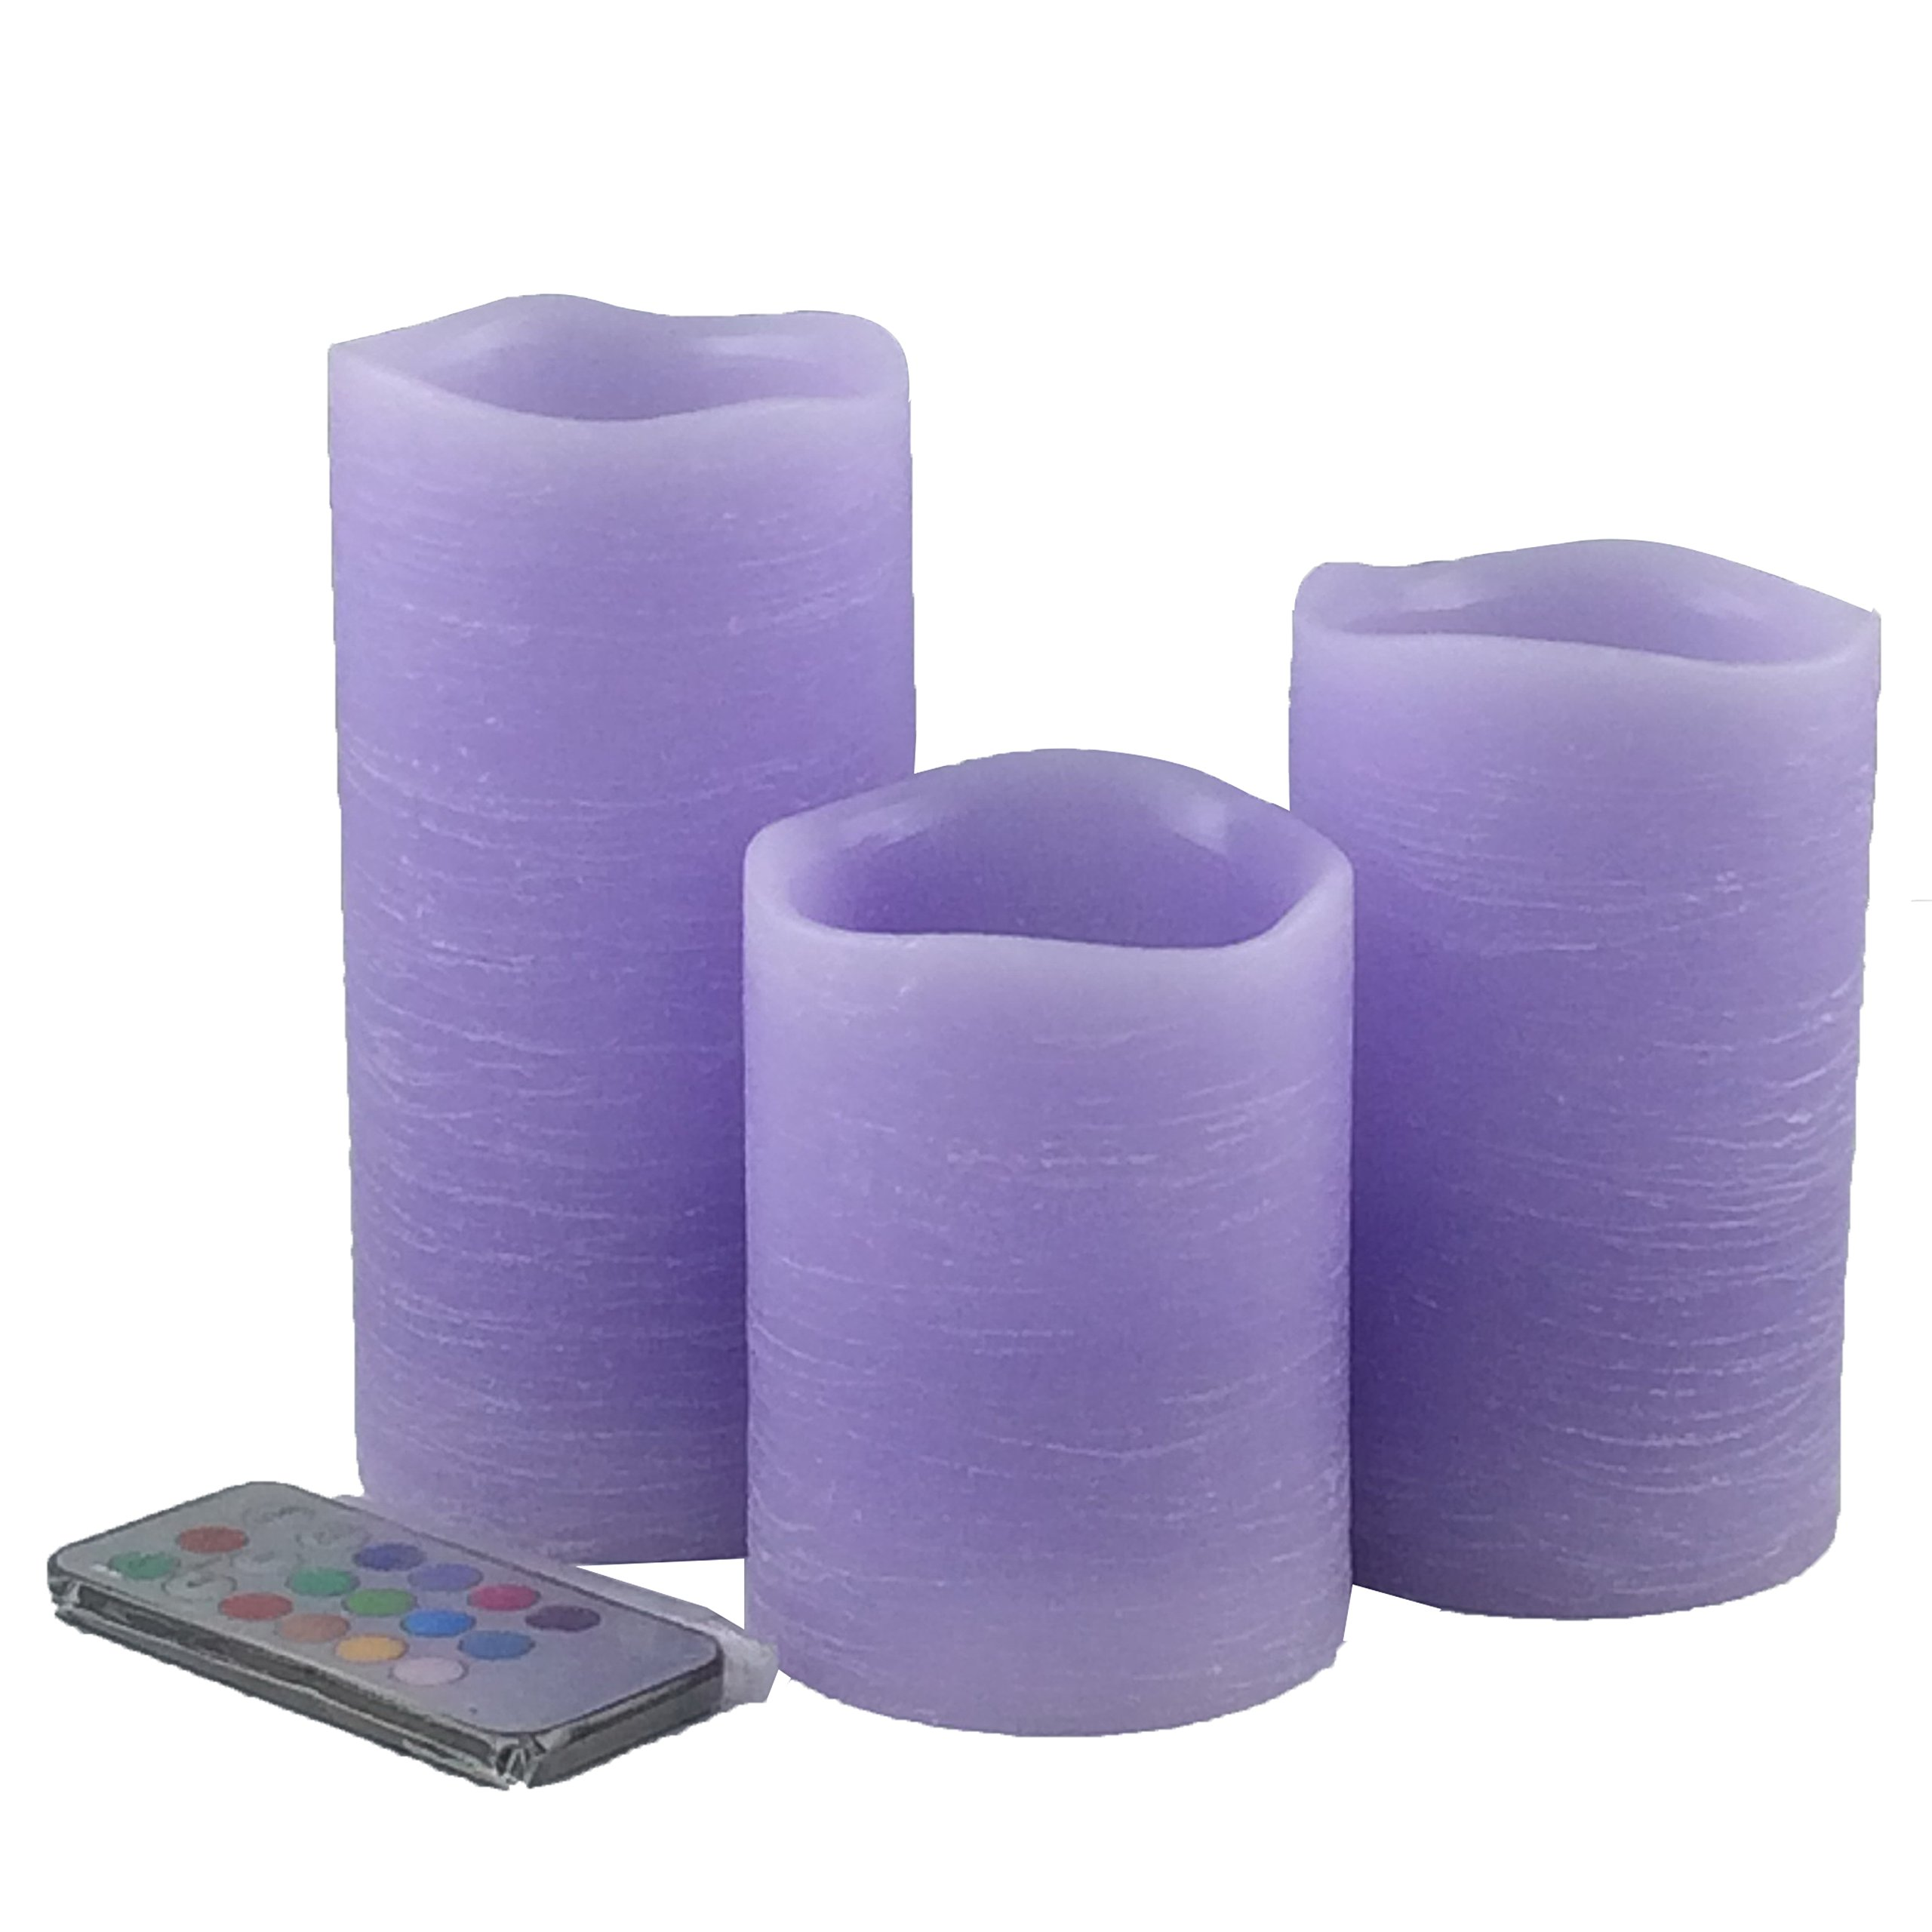 Adoria Purple Rustic Real Wax led lights Lavendar Scented Timer Remote Set of 3, Tall 4, 5, 6inch